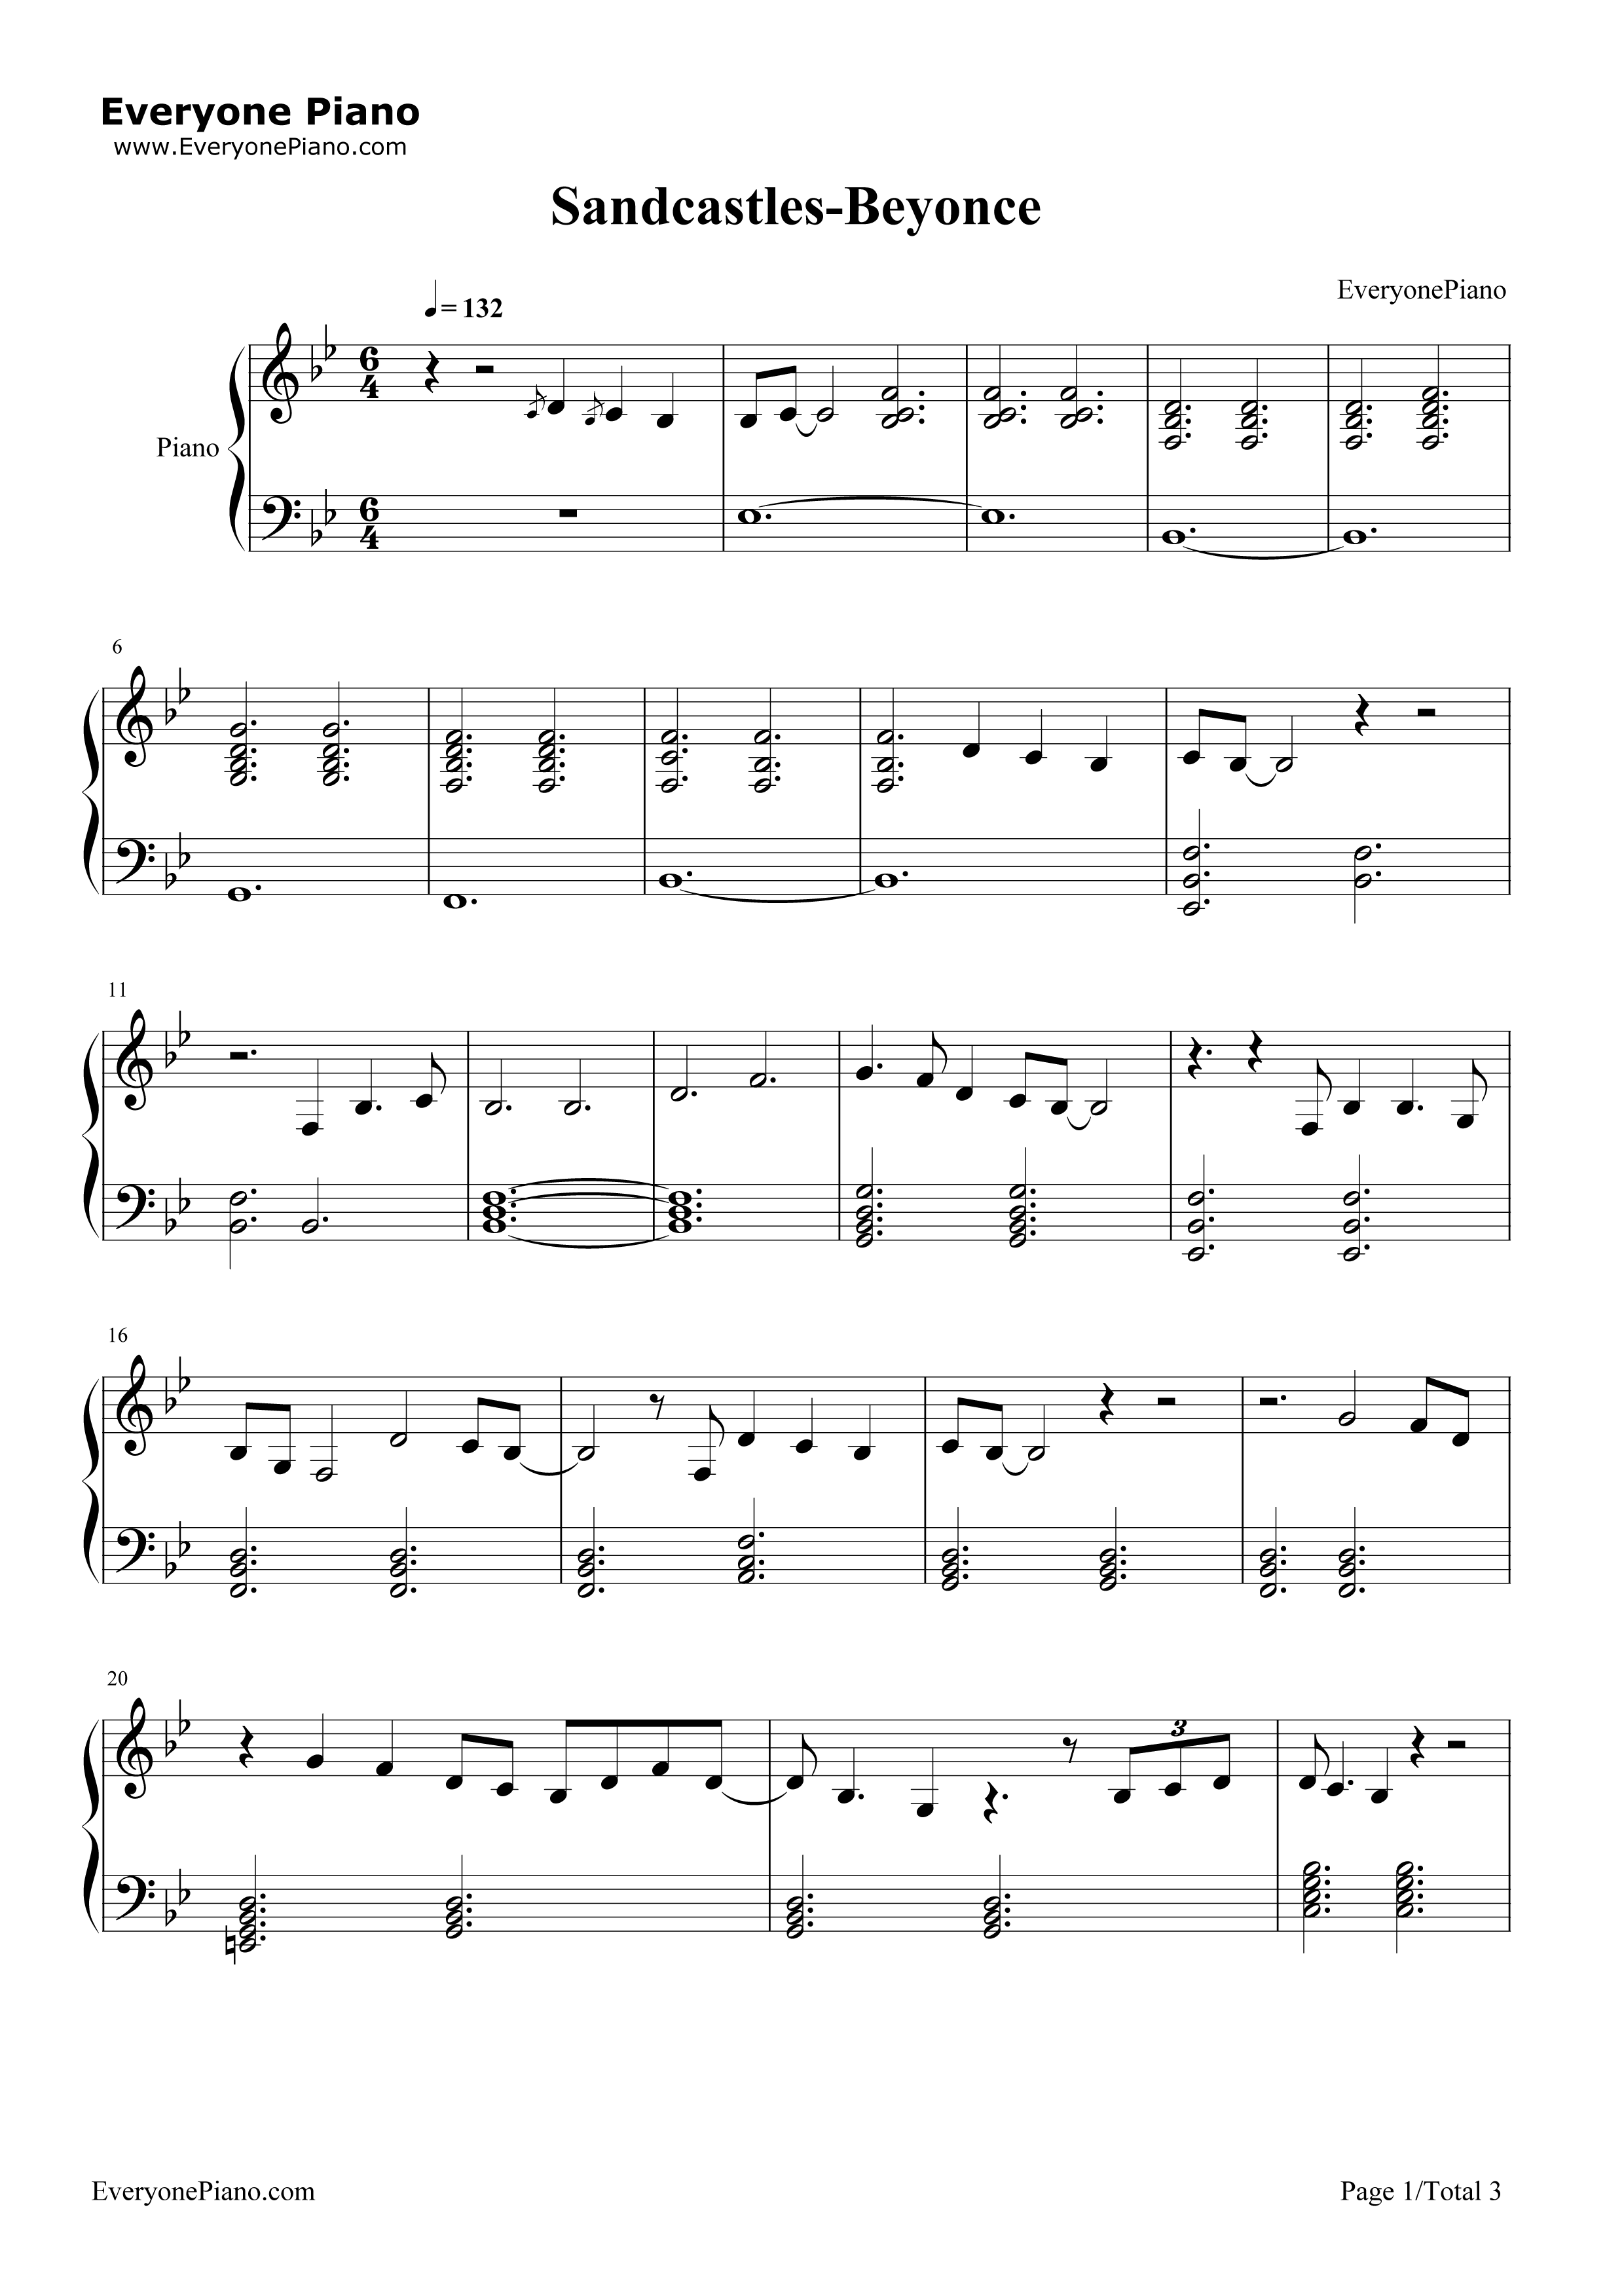 Sandcastles beyonc stave preview 1 free piano sheet music listen now print sheet sandcastles beyonc stave preview 1 hexwebz Gallery